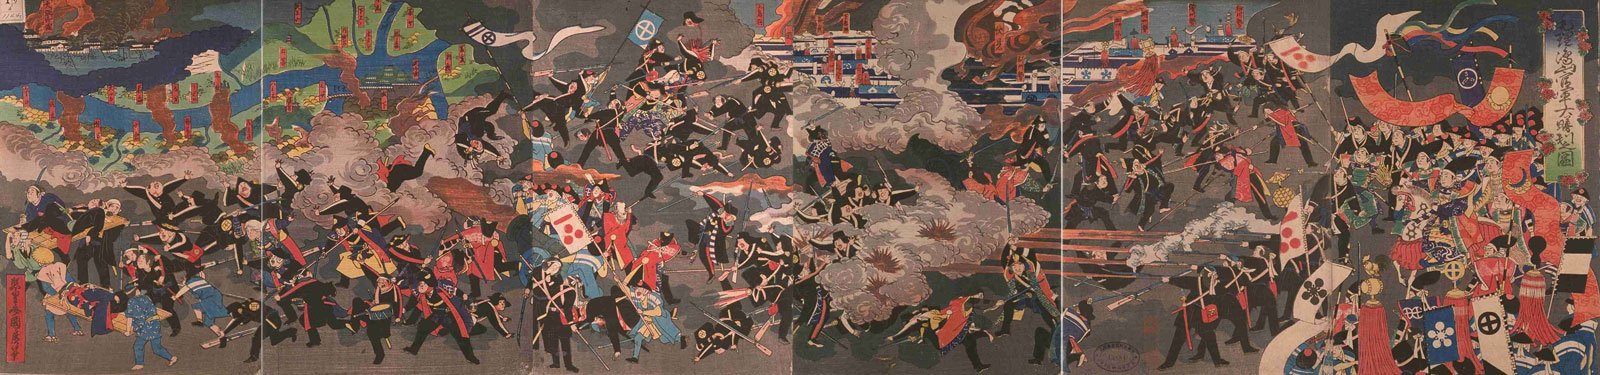 the meiji restoration of japan essay The meiji restoration: roots of modern japan shunsuke sumikawa march 29, 1999 asia 163 professor wylie introduction the start of the meiji era and the beginning of.